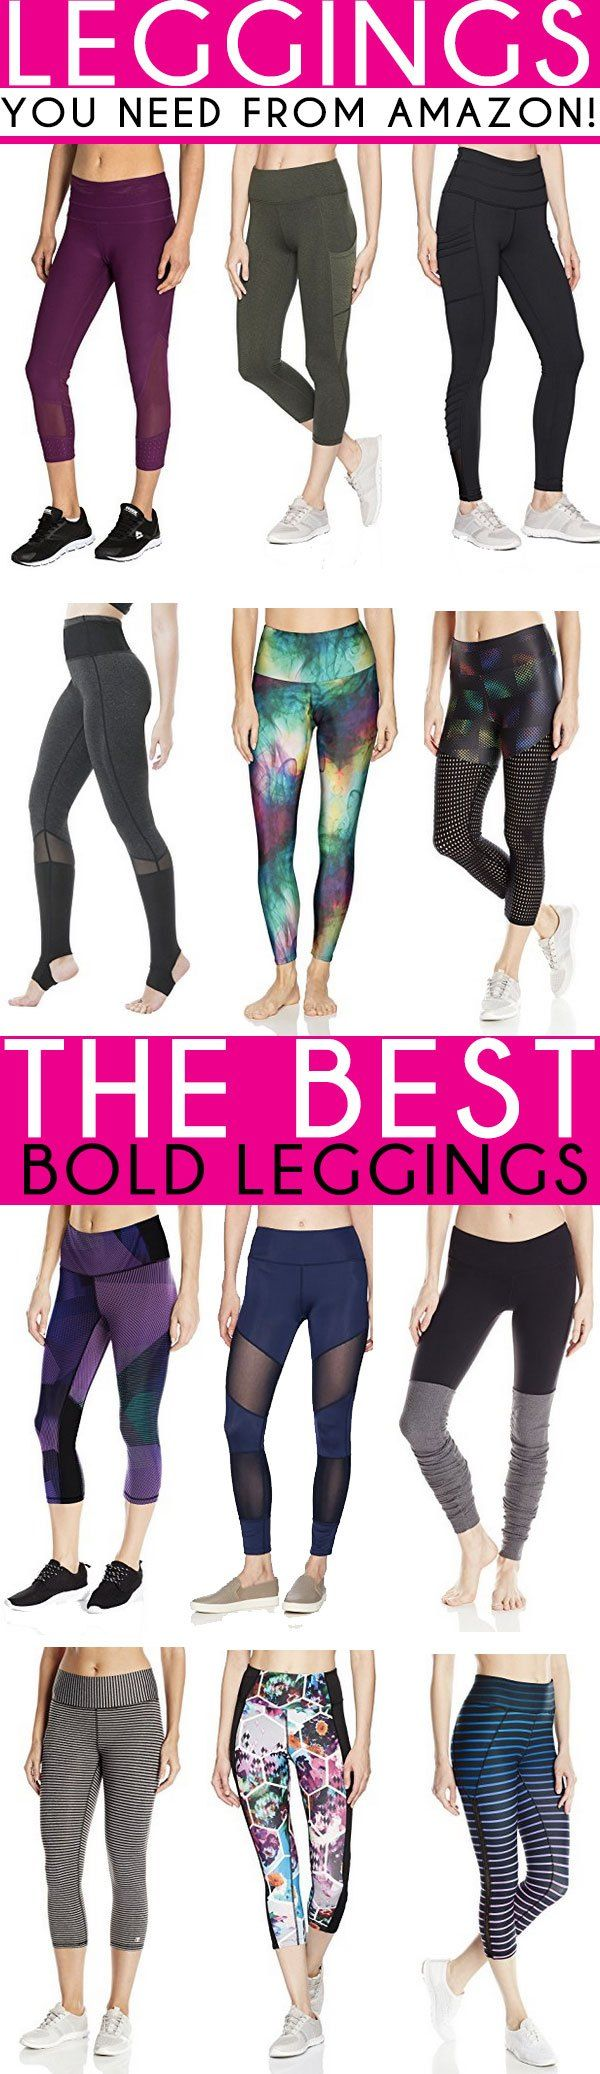 The BEST Leggings on Amazon for those days you need workout leggings! |Athletic Leggings | Mesh Leggings that are amazing! | Athletic Wear from Amazon | Leggings with cut outs | Bold & Colorful Leggings | Black Leggings |